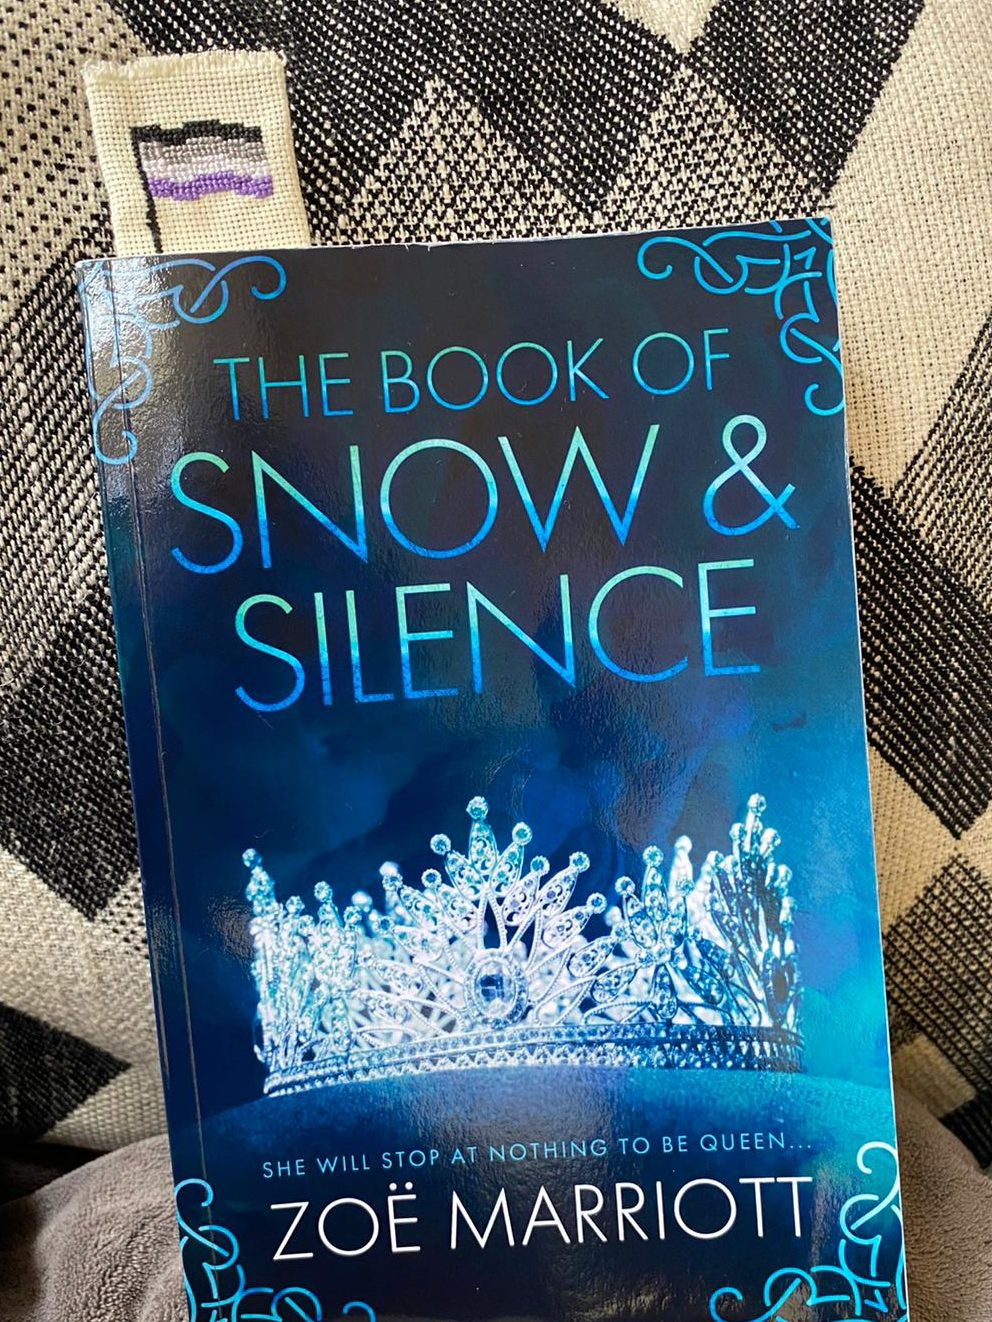 A photo of the Cover of the Book of Snow and silence. It is dark blue with lighter blue writing and white frost-like images